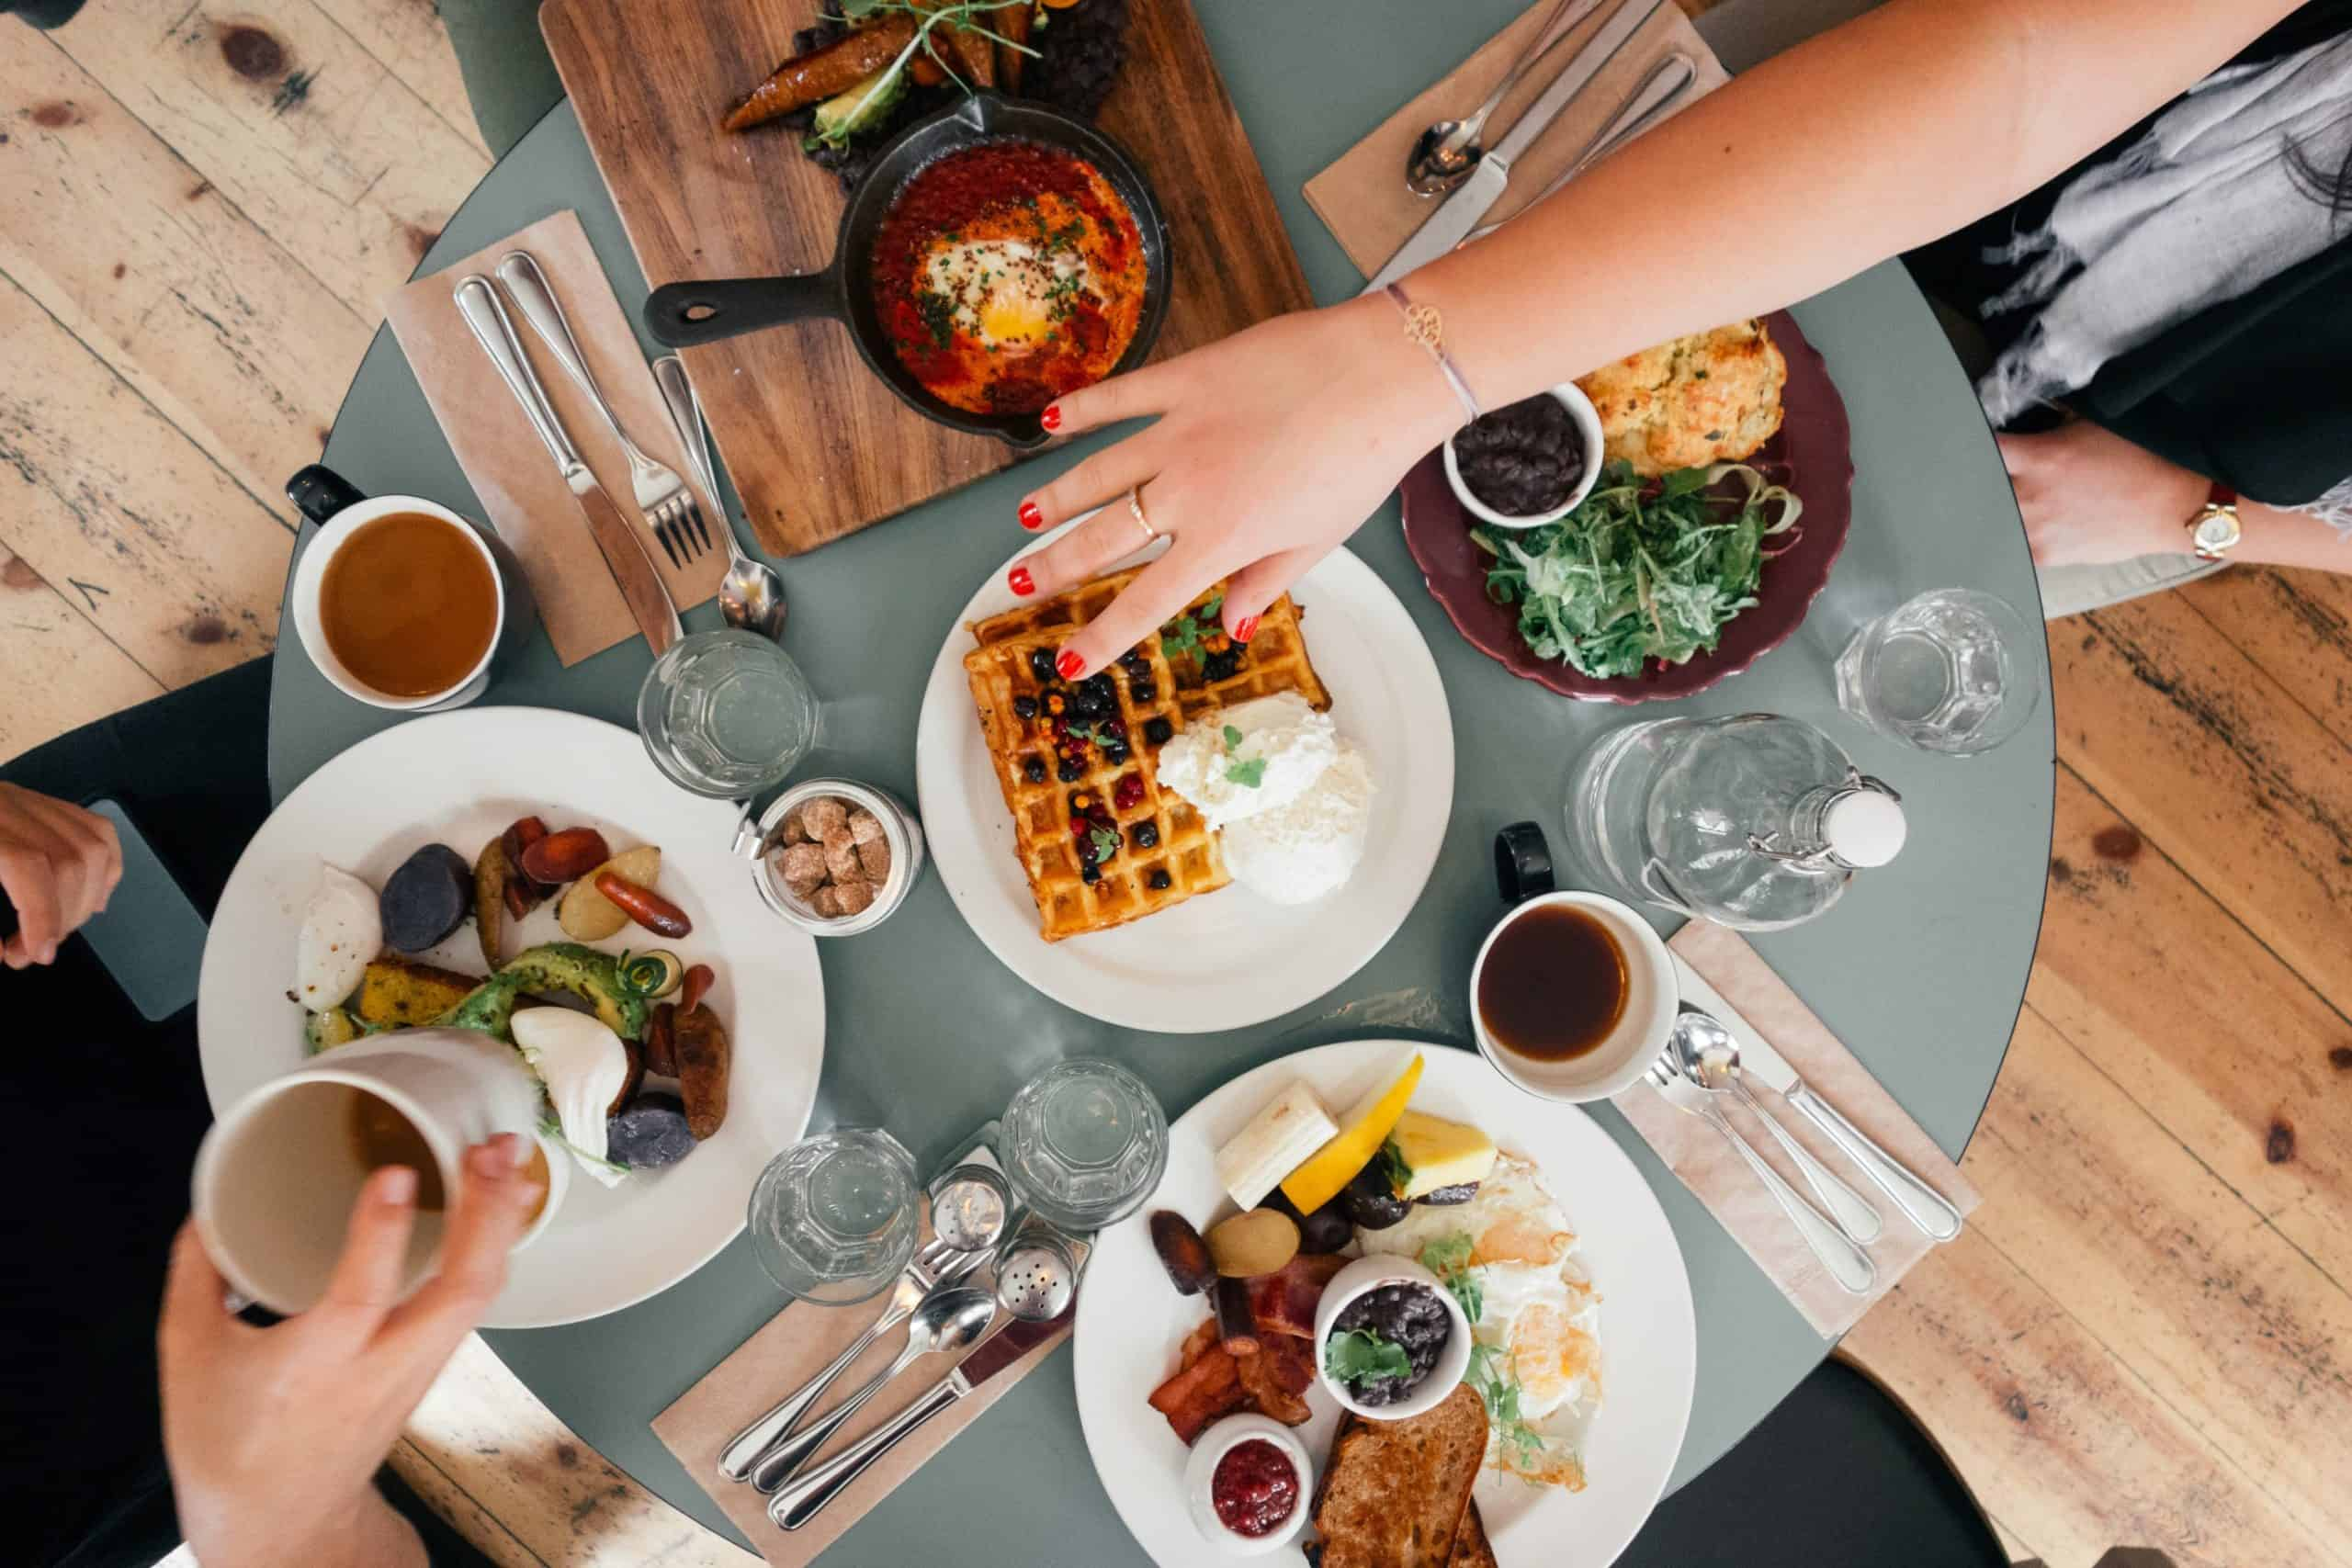 Top 40 Foodies Cooking Up A Storm On Social Media